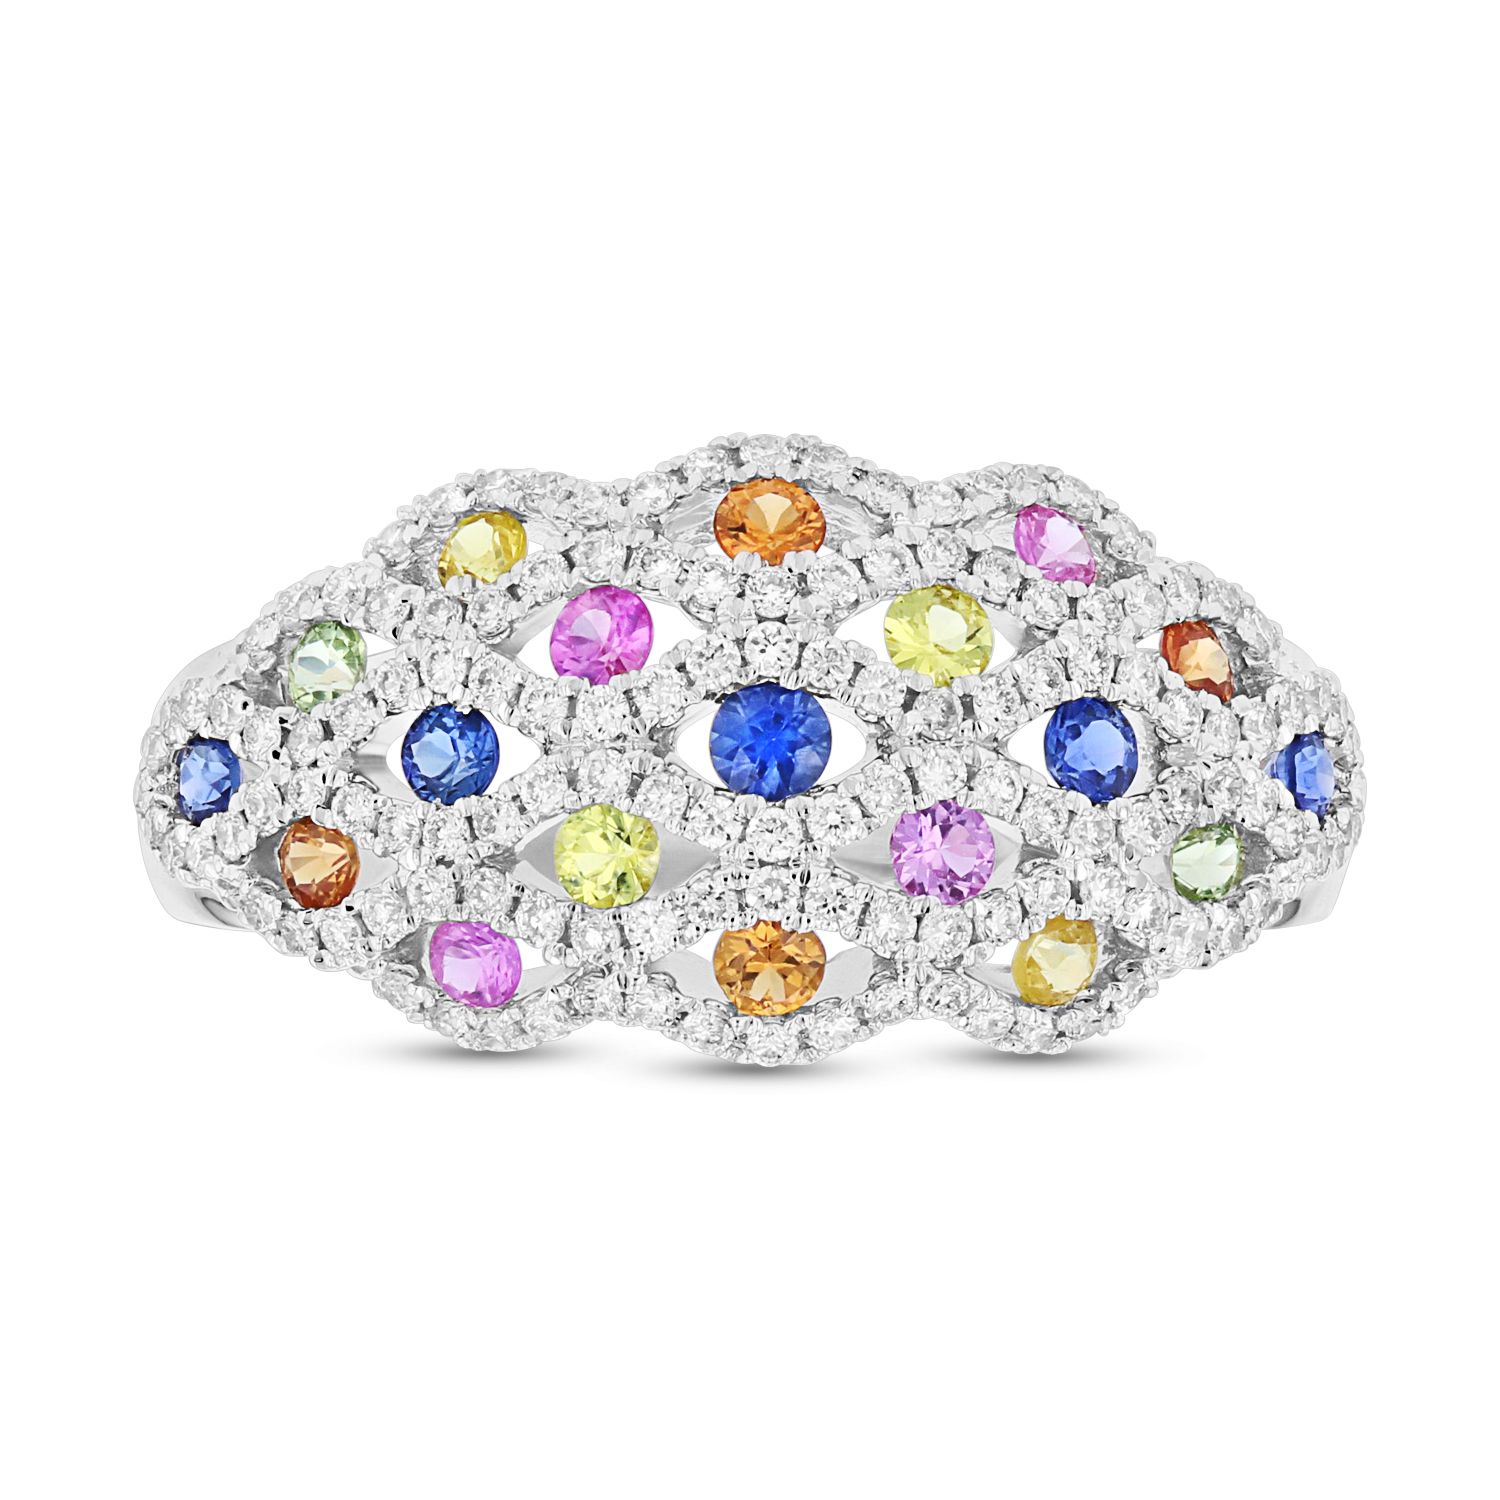 View 0.95ctw Diamond and Multi Sapphire Ring in 14k White Gold